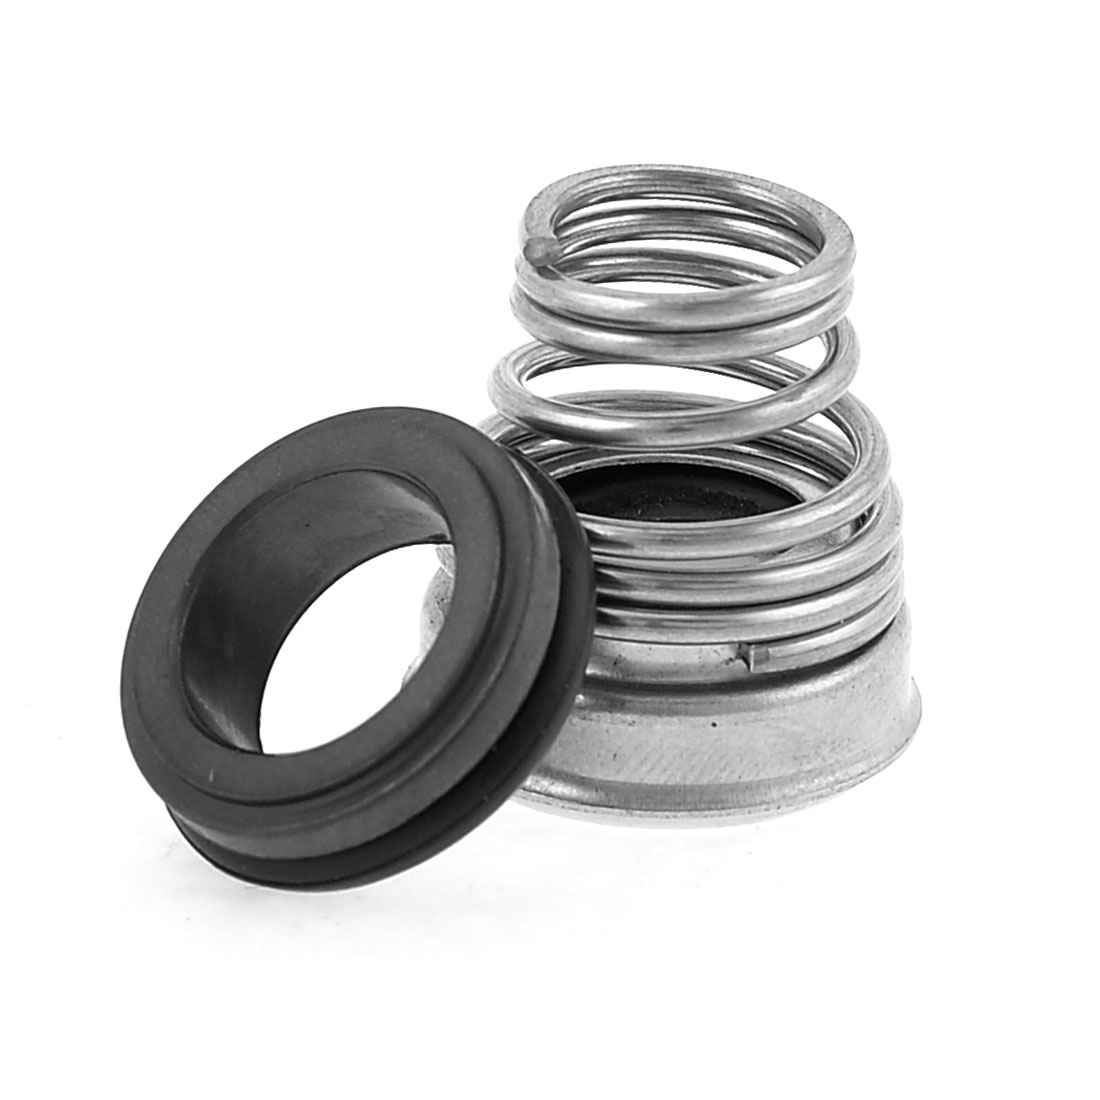 155-13 Ceramic Rotary Ring Rubber Bellows Pump Mechanical Seal 13mm